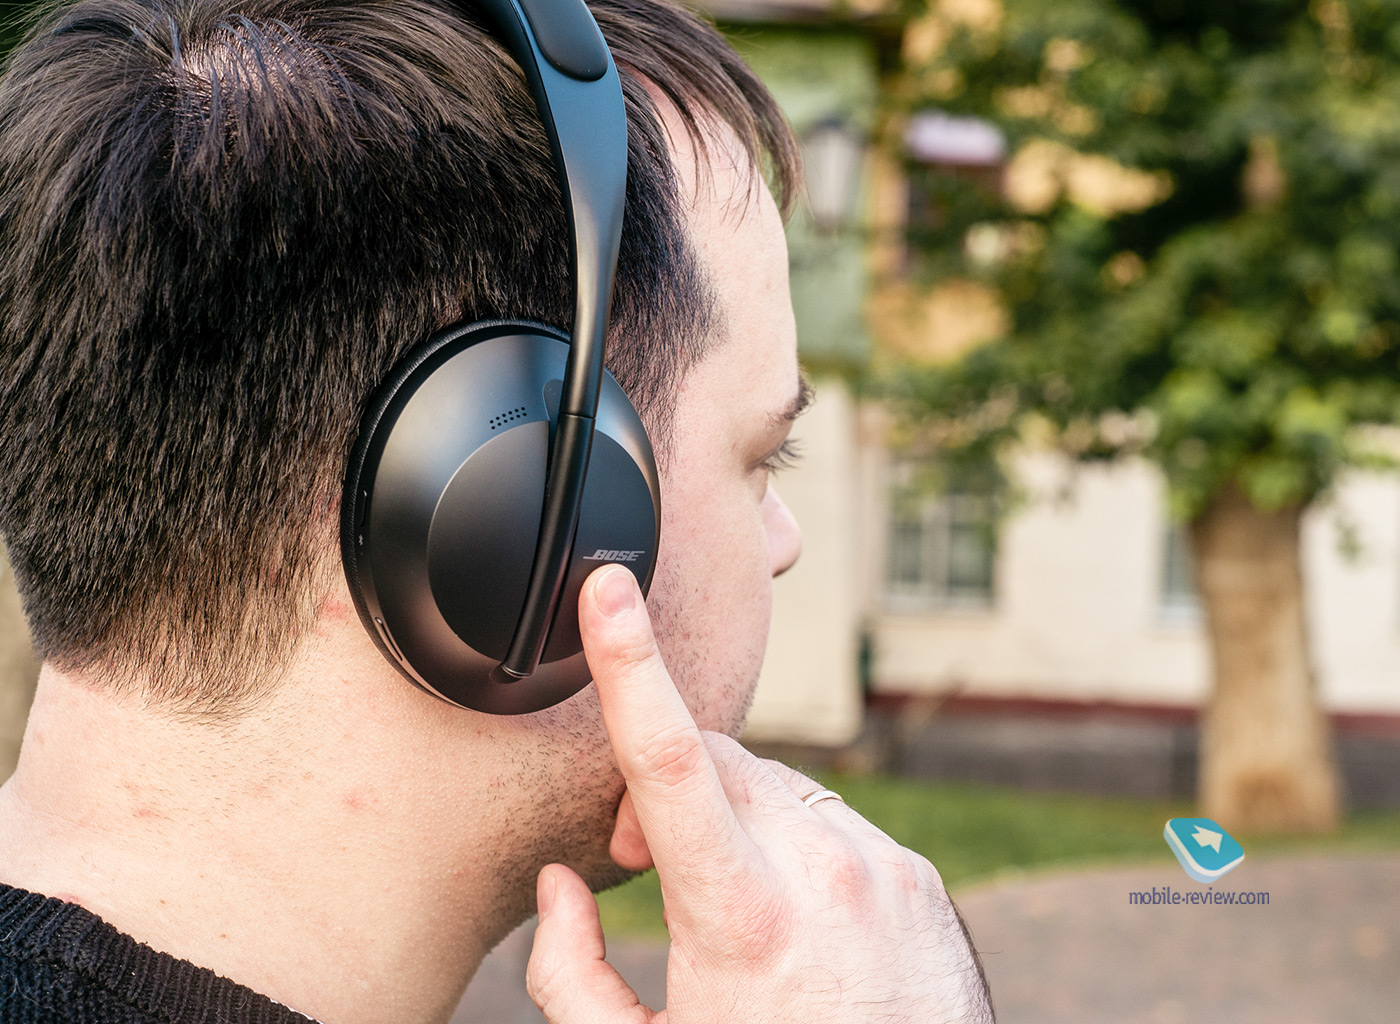 Обзор наушников Bose Noise-Cancelling Headphones 700